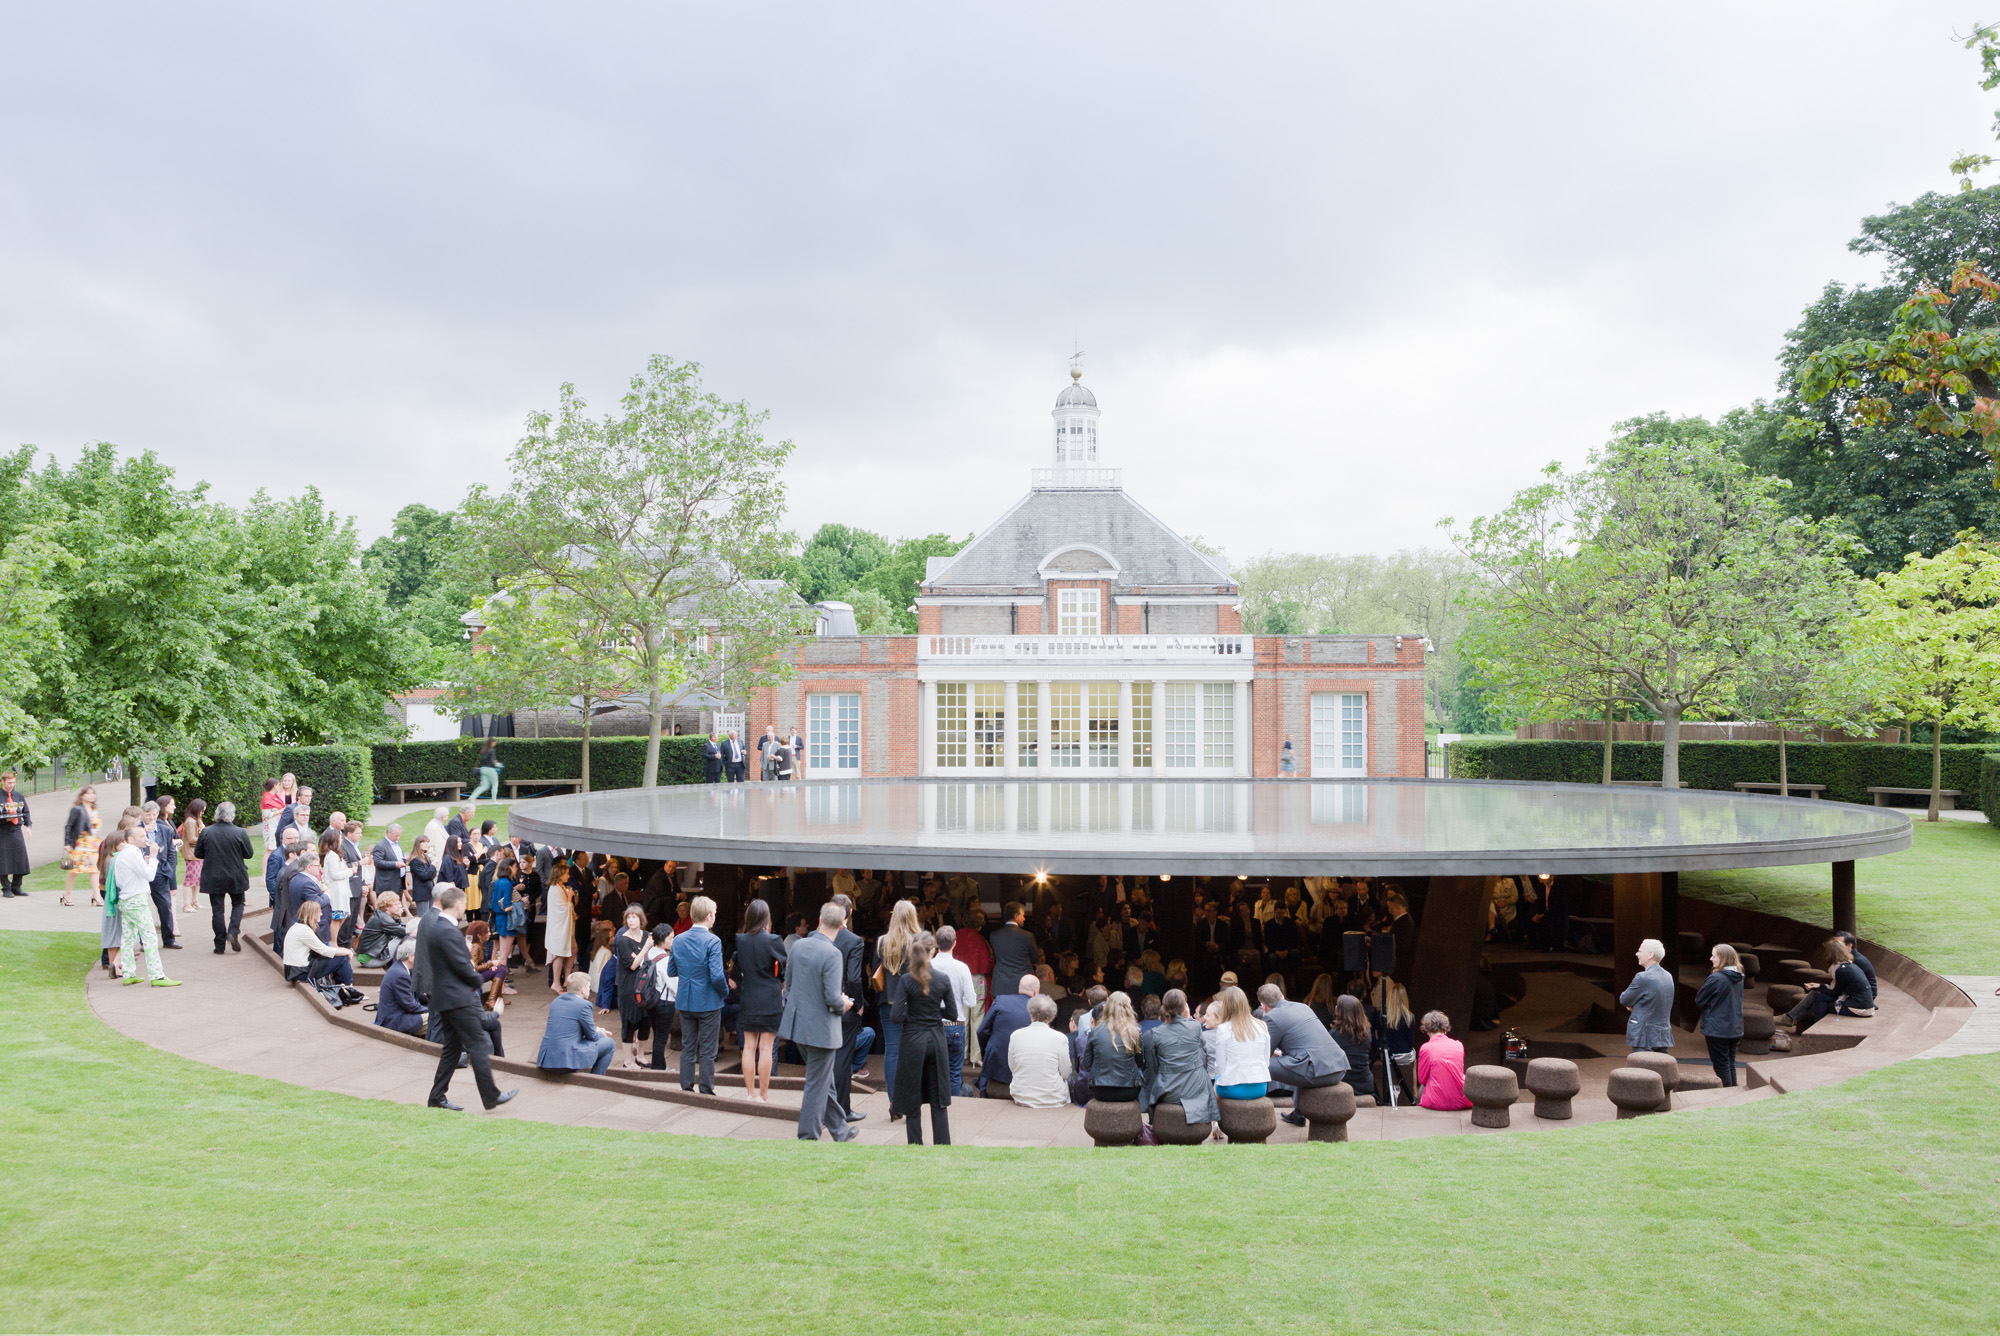 Serpentine Gallery Pavilion 2012. Designed by Herzog & de Meuron and Ai Weiwei. © Herzog & de Meuron and Ai Weiwei. Photo: © 2012 Iwan Baan